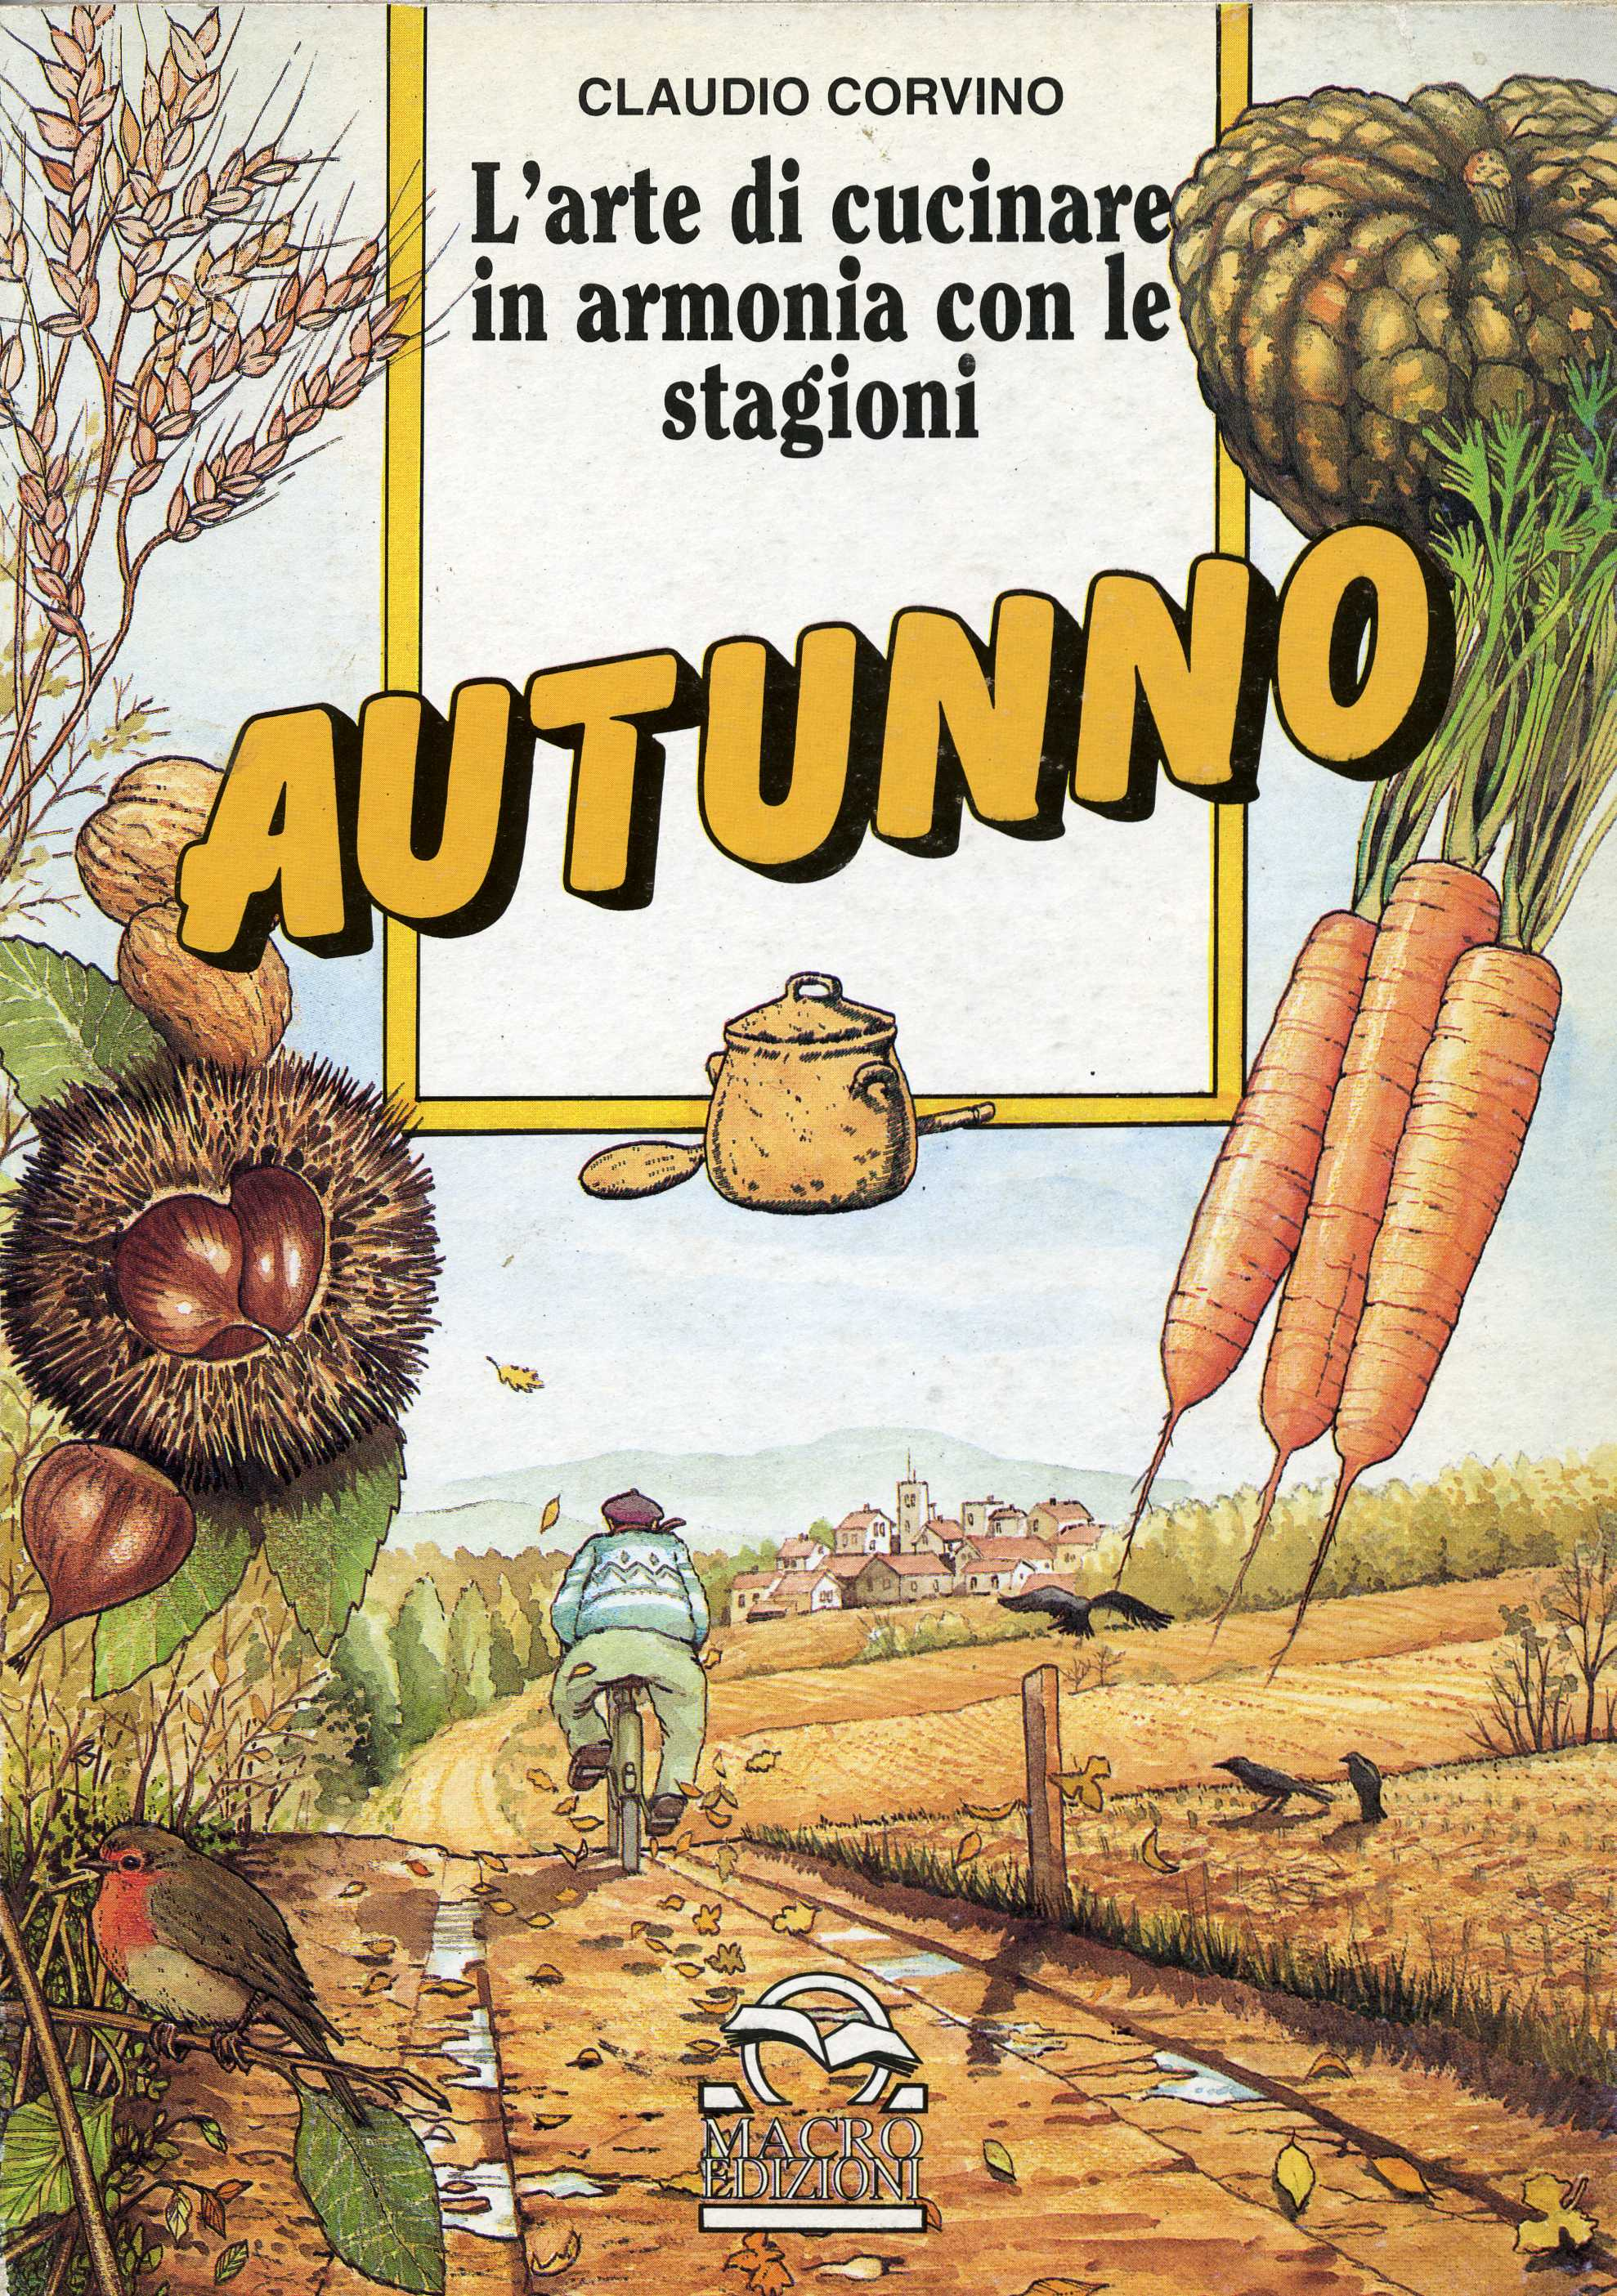 Autunno in cucina